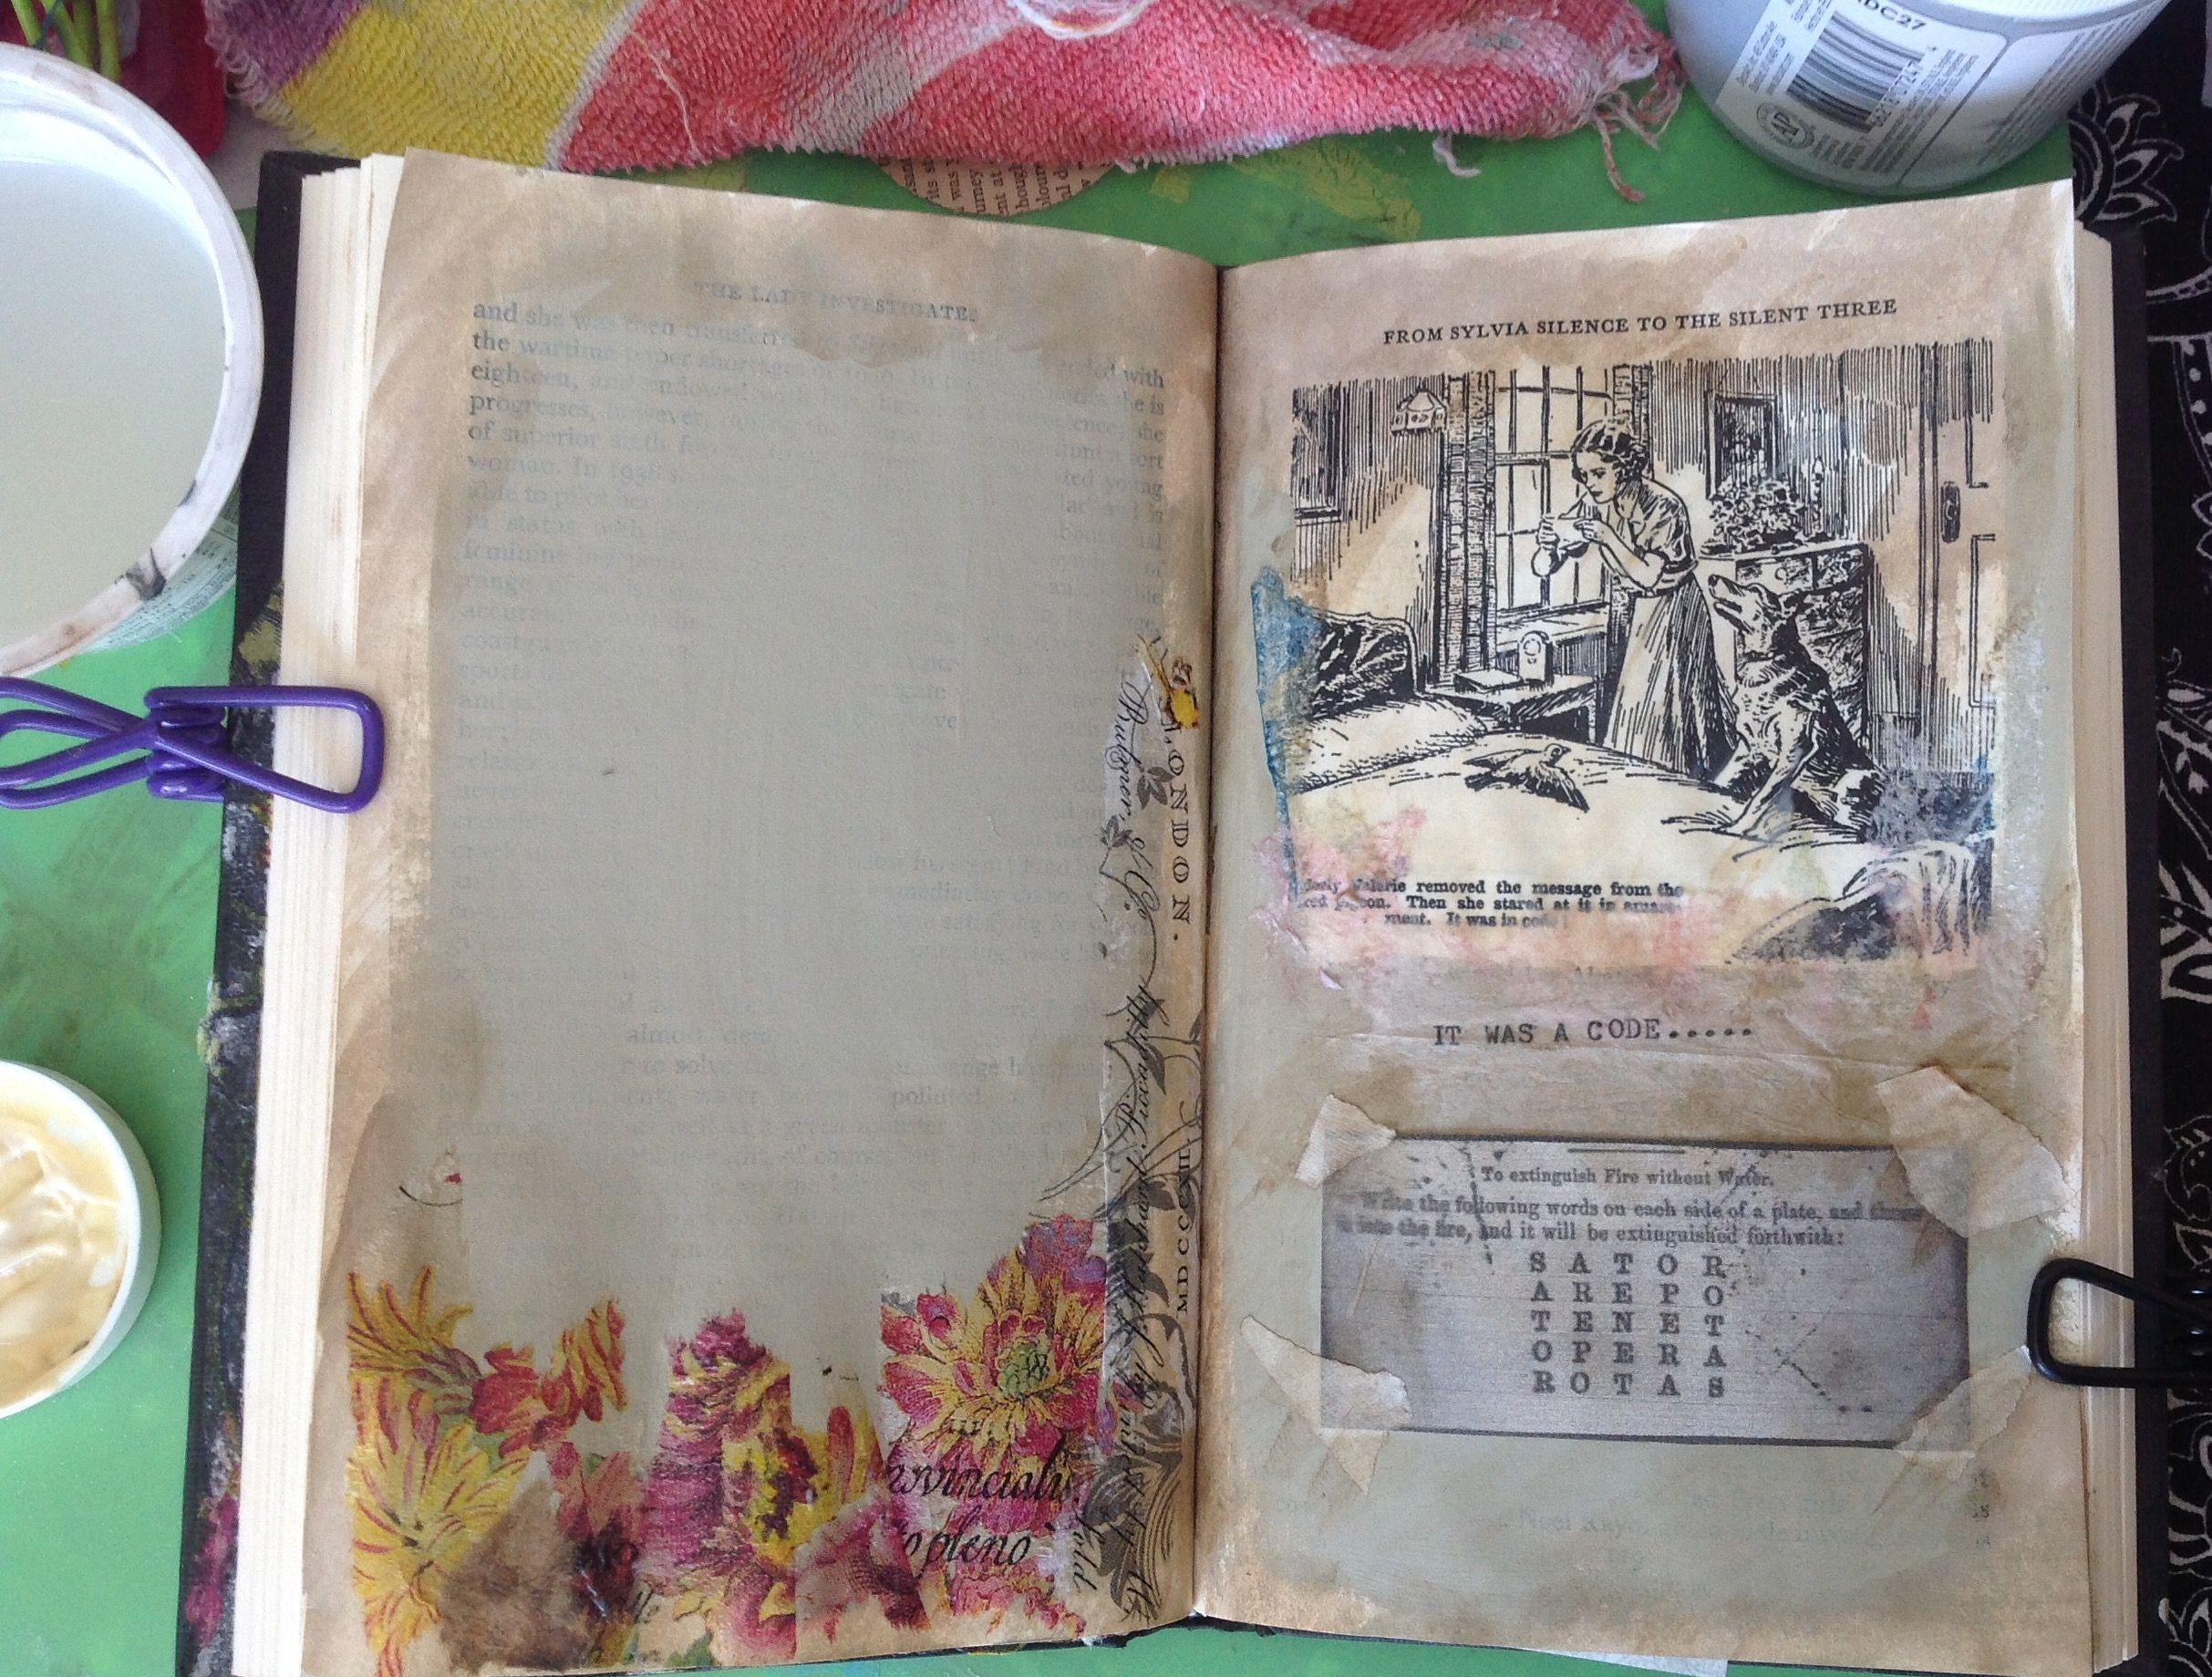 For the altered book Mystery theme.